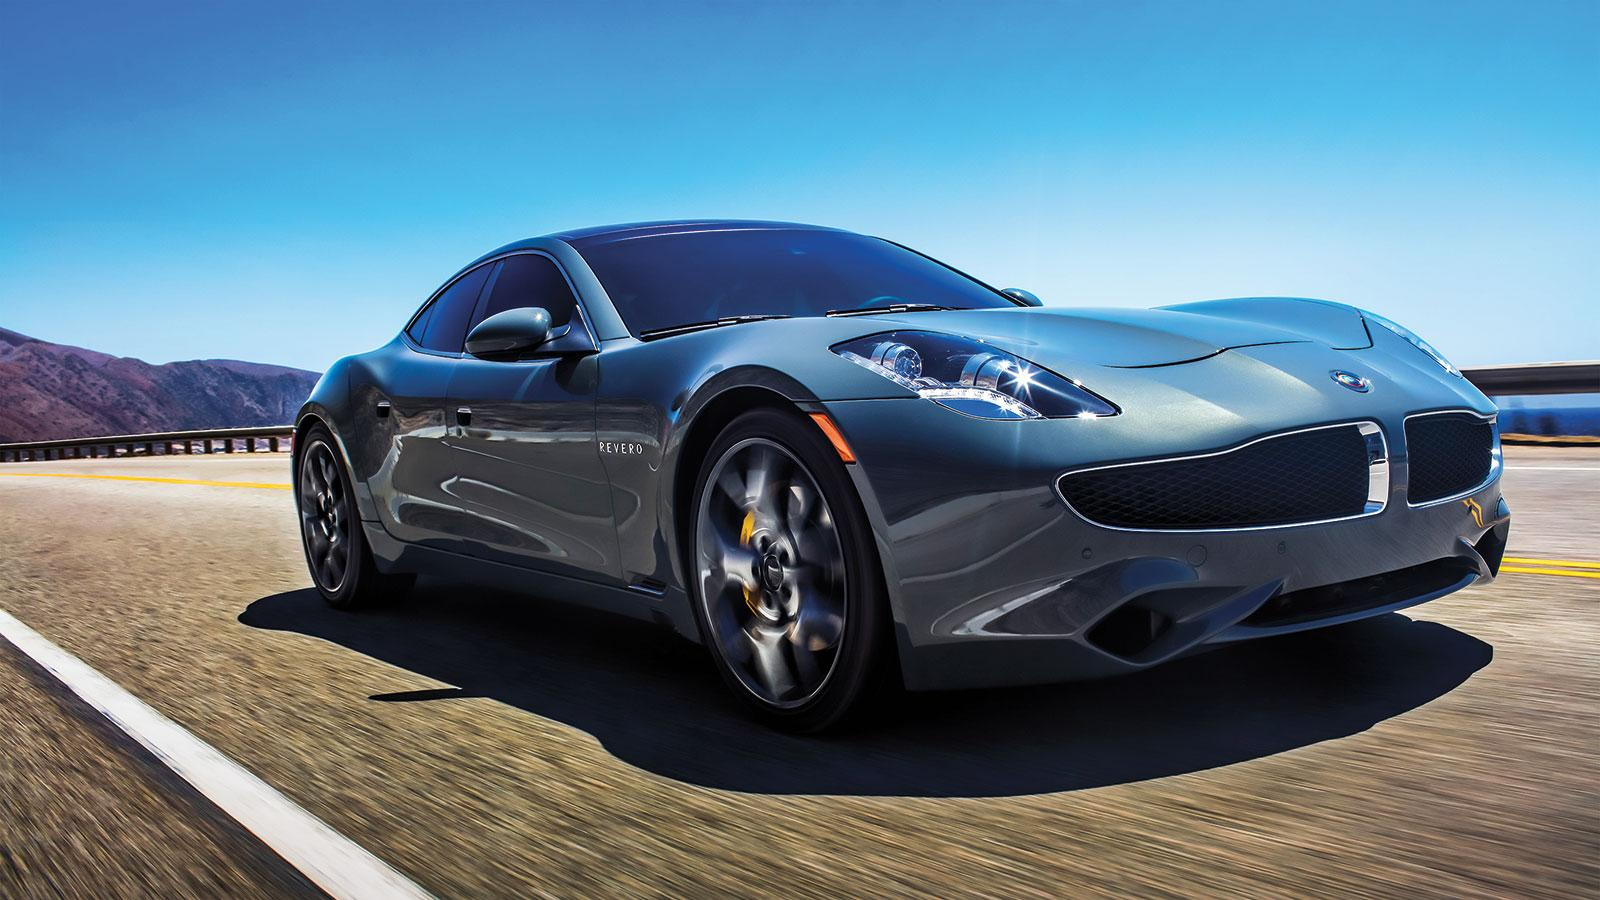 This Karma Revero Hybrid Hits 60 mph in Only 5.4 Seconds